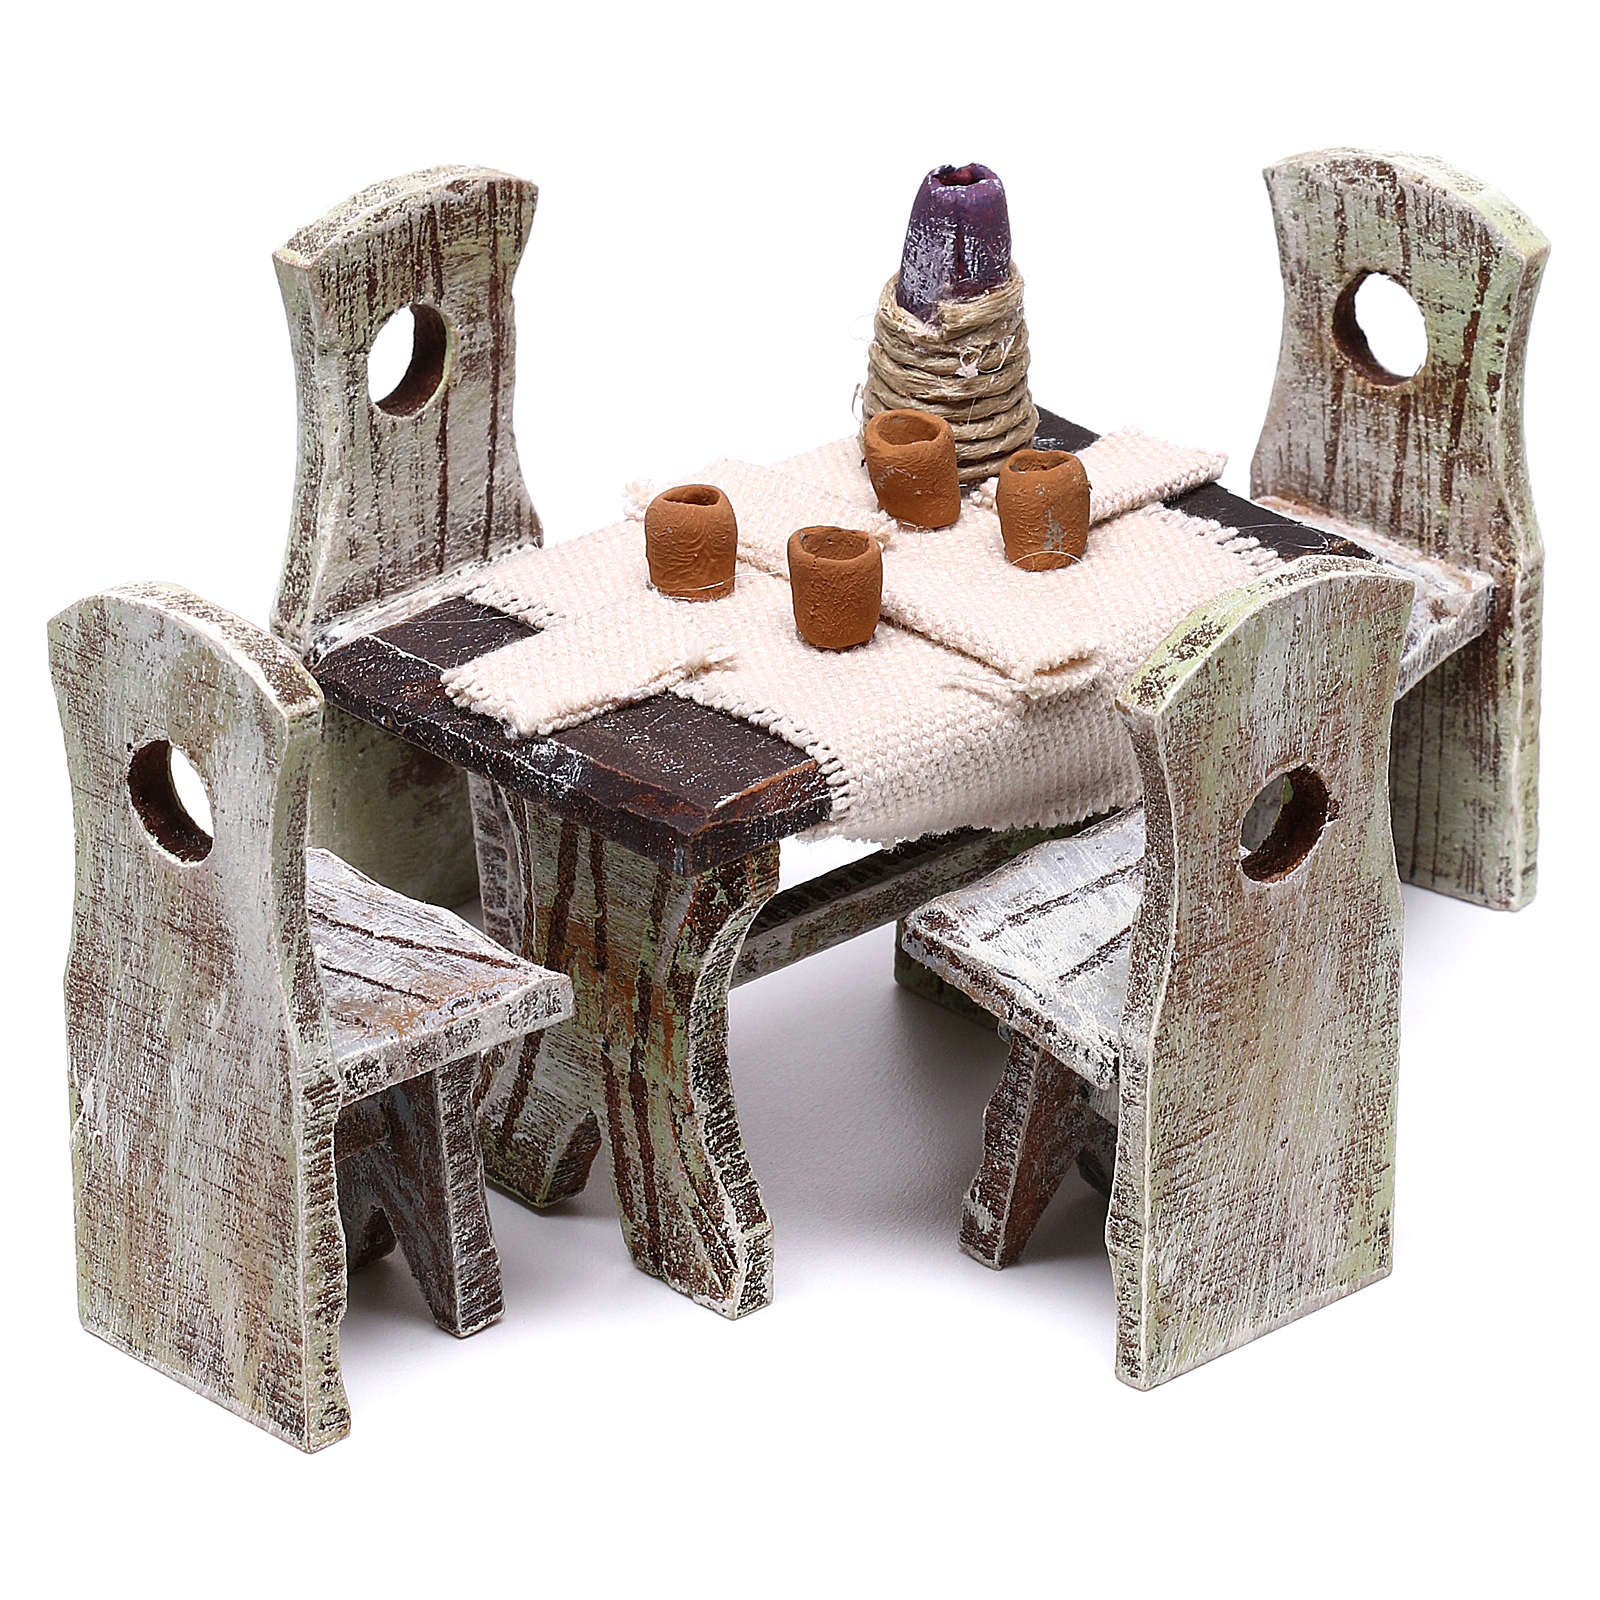 Set table with 4 chairs for Nativity scene of 10 cm 5x5x5 cm 4